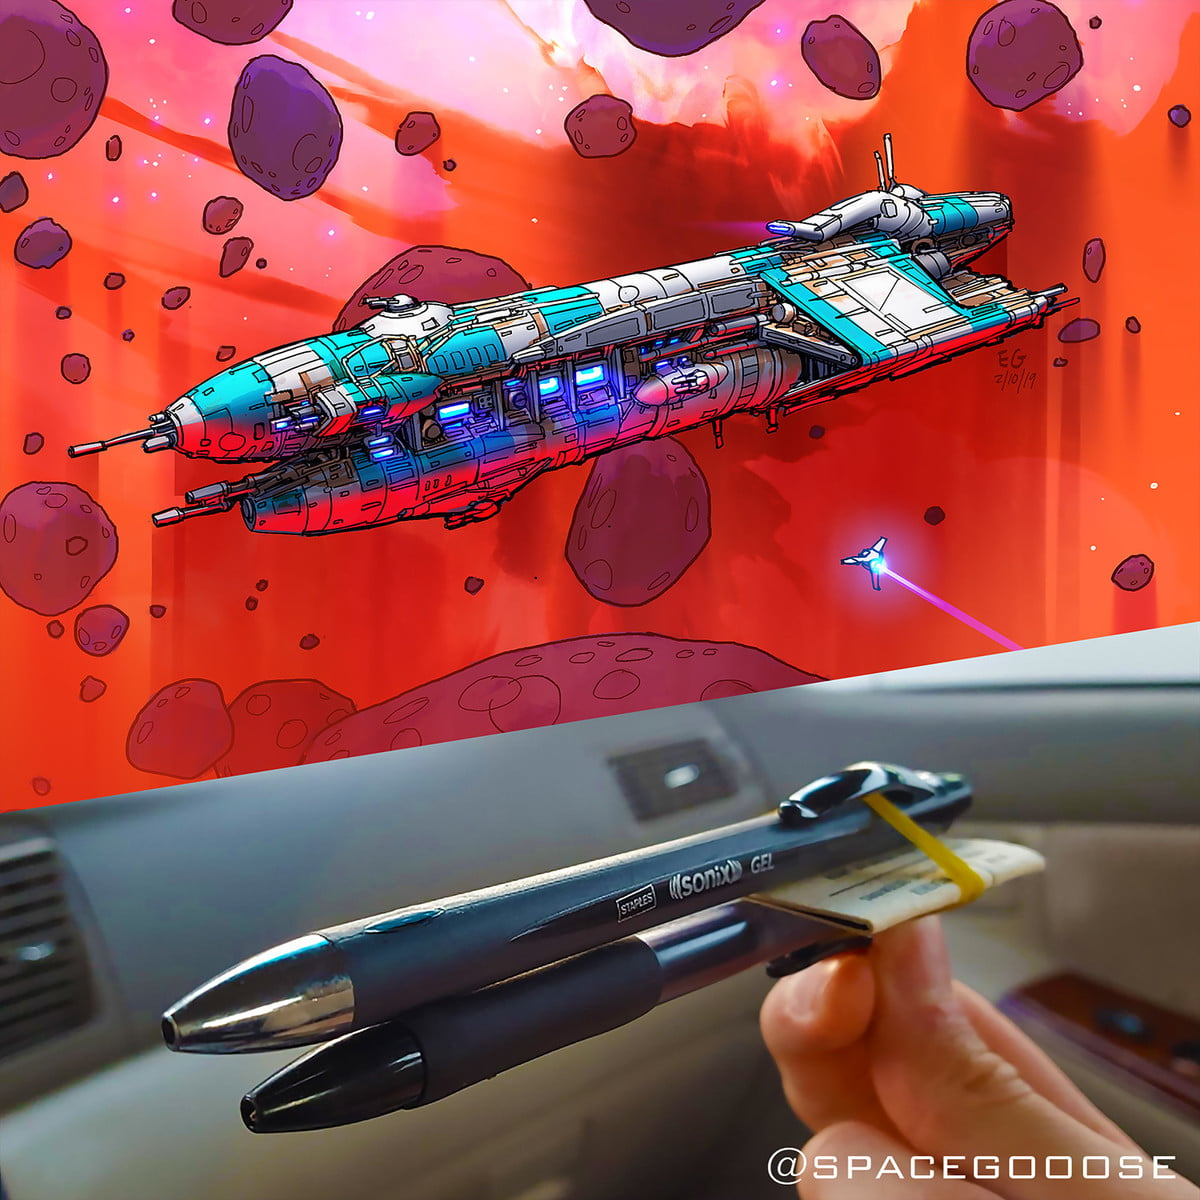 apple engineer draws objects as spaceships eric geusz penship